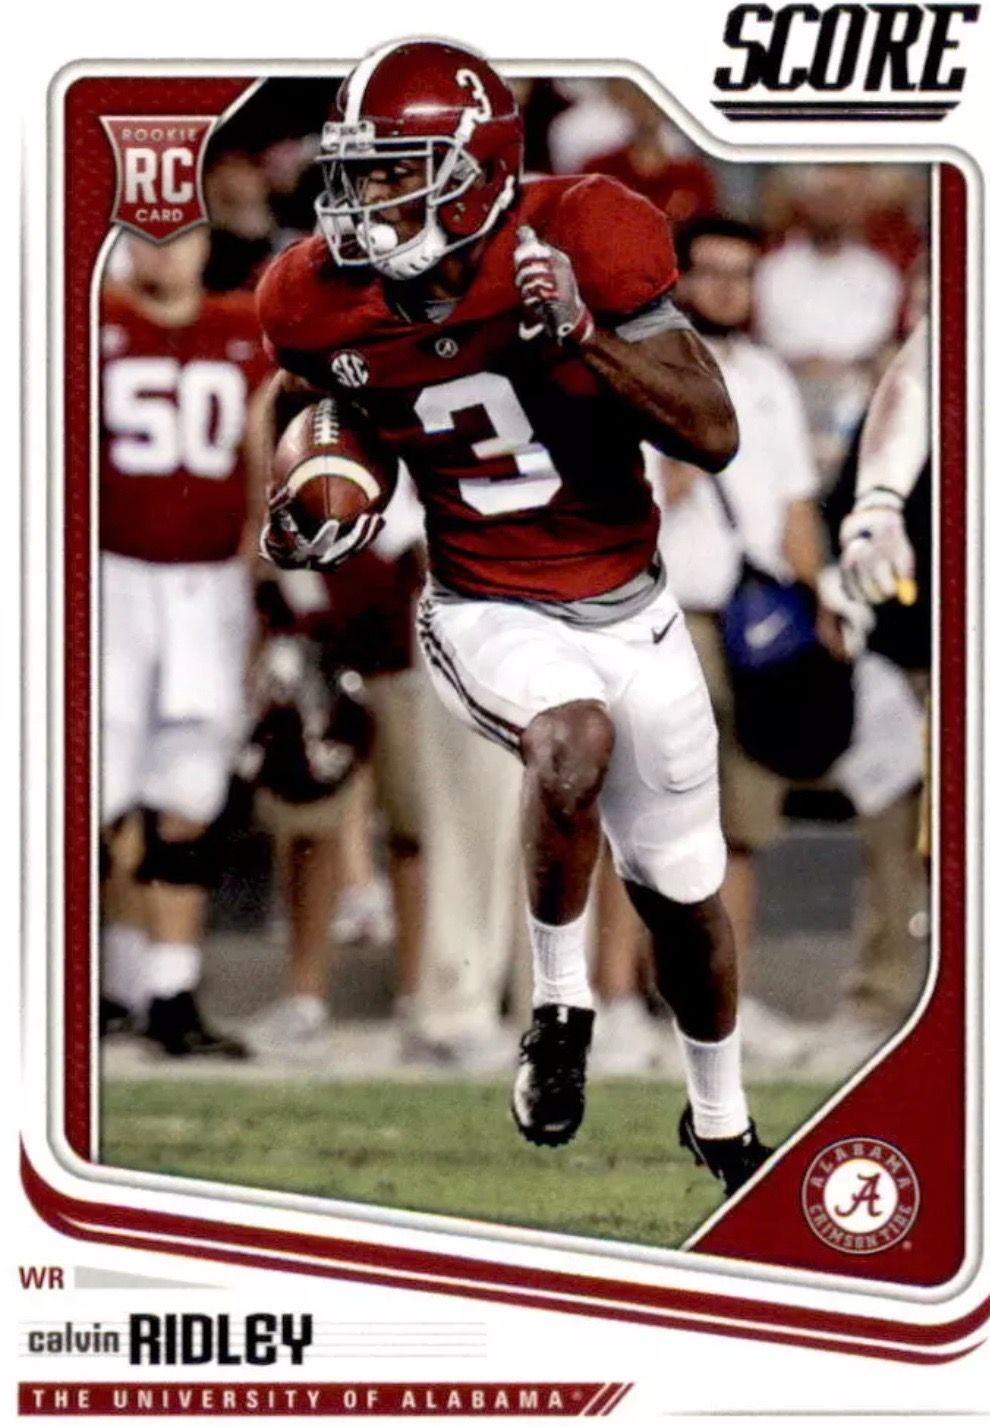 Calvin Ridley Nfl 2018 Rookie Card From Score Alabama Rolltide Bama Builtbybama R Alabama Crimson Tide Football Crimson Tide Football Alabama Crimson Tide